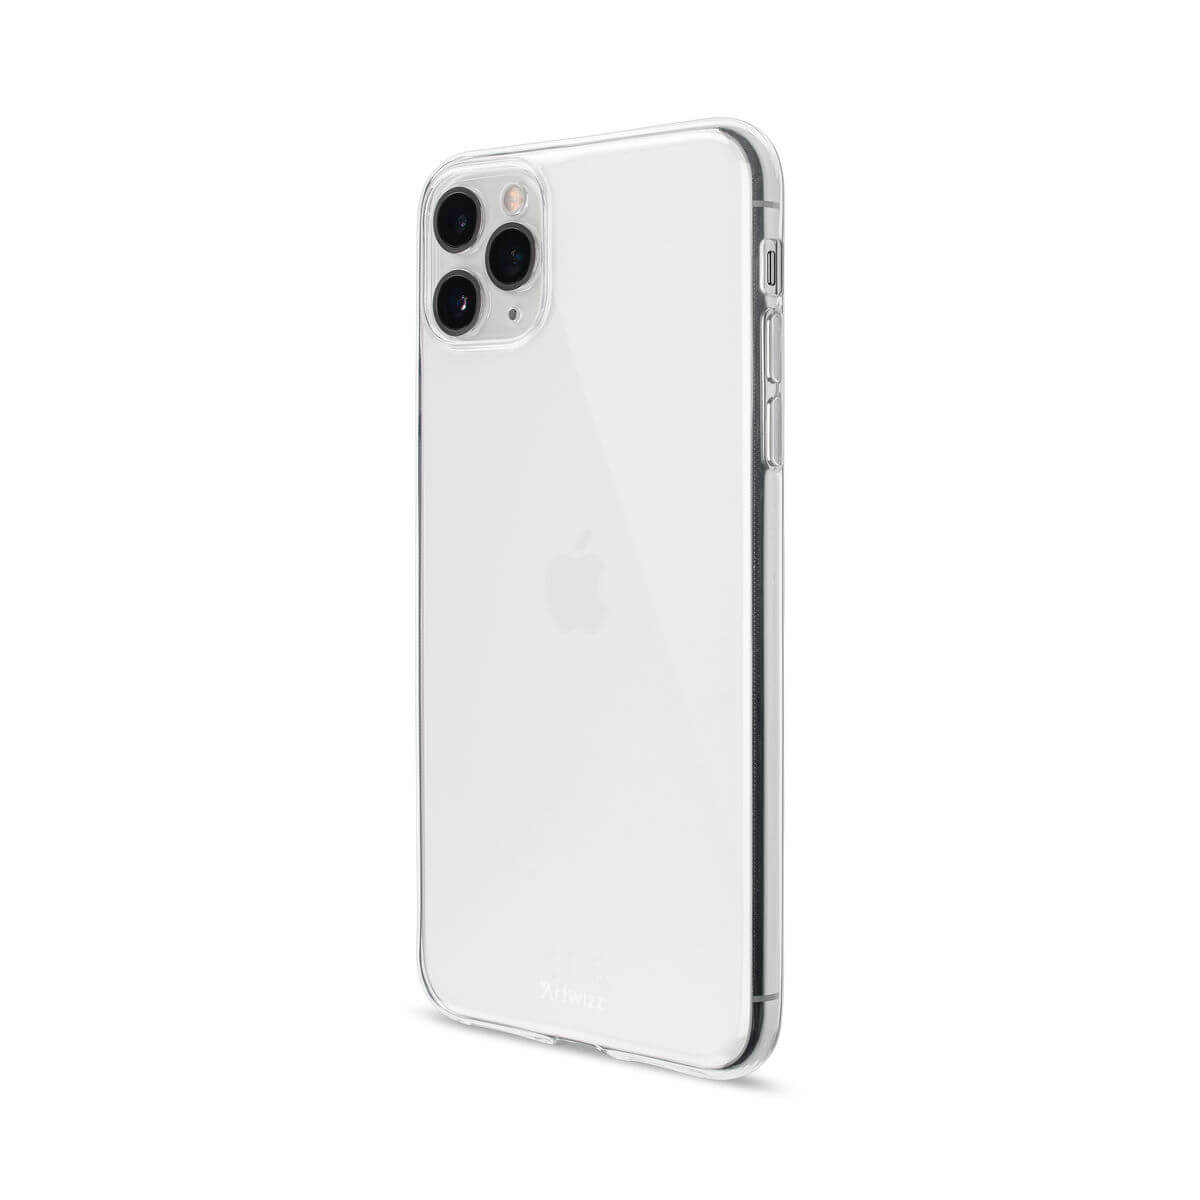 Artwizz NoCase for iPhone 11 Pro Max (clear)